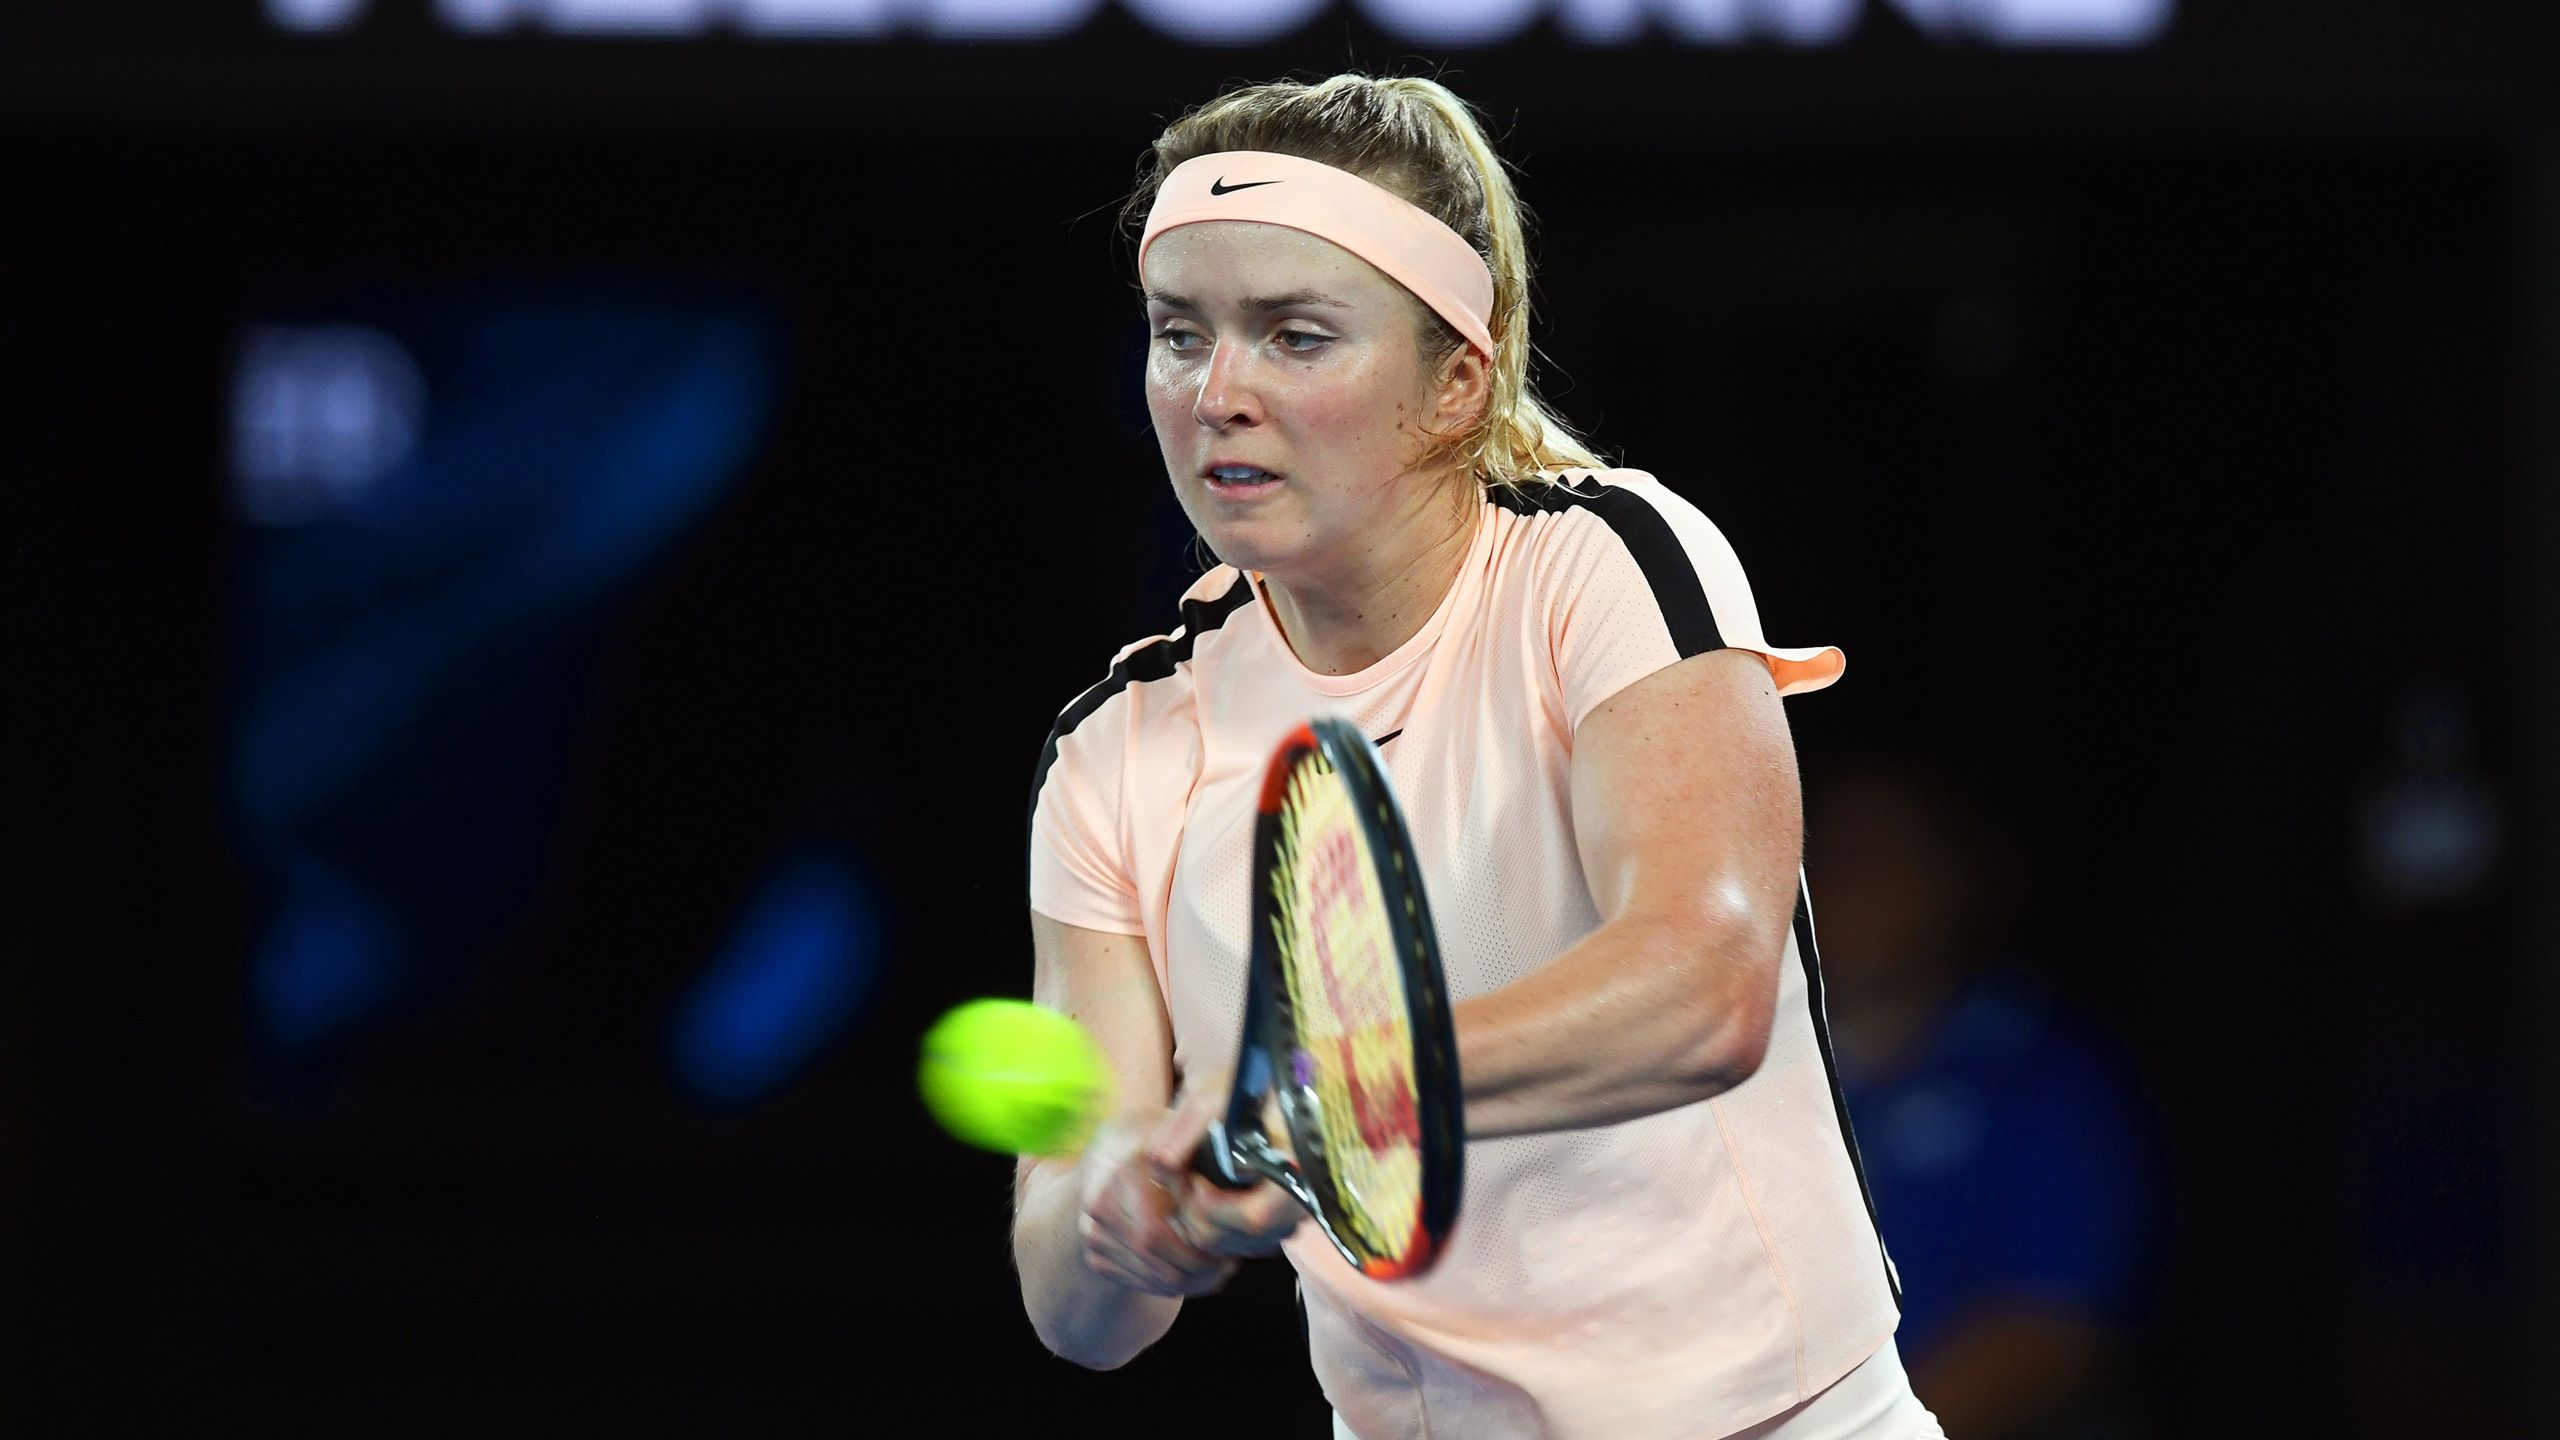 (4) Svitolina vs. Mertens (Women's Quarterfinals)